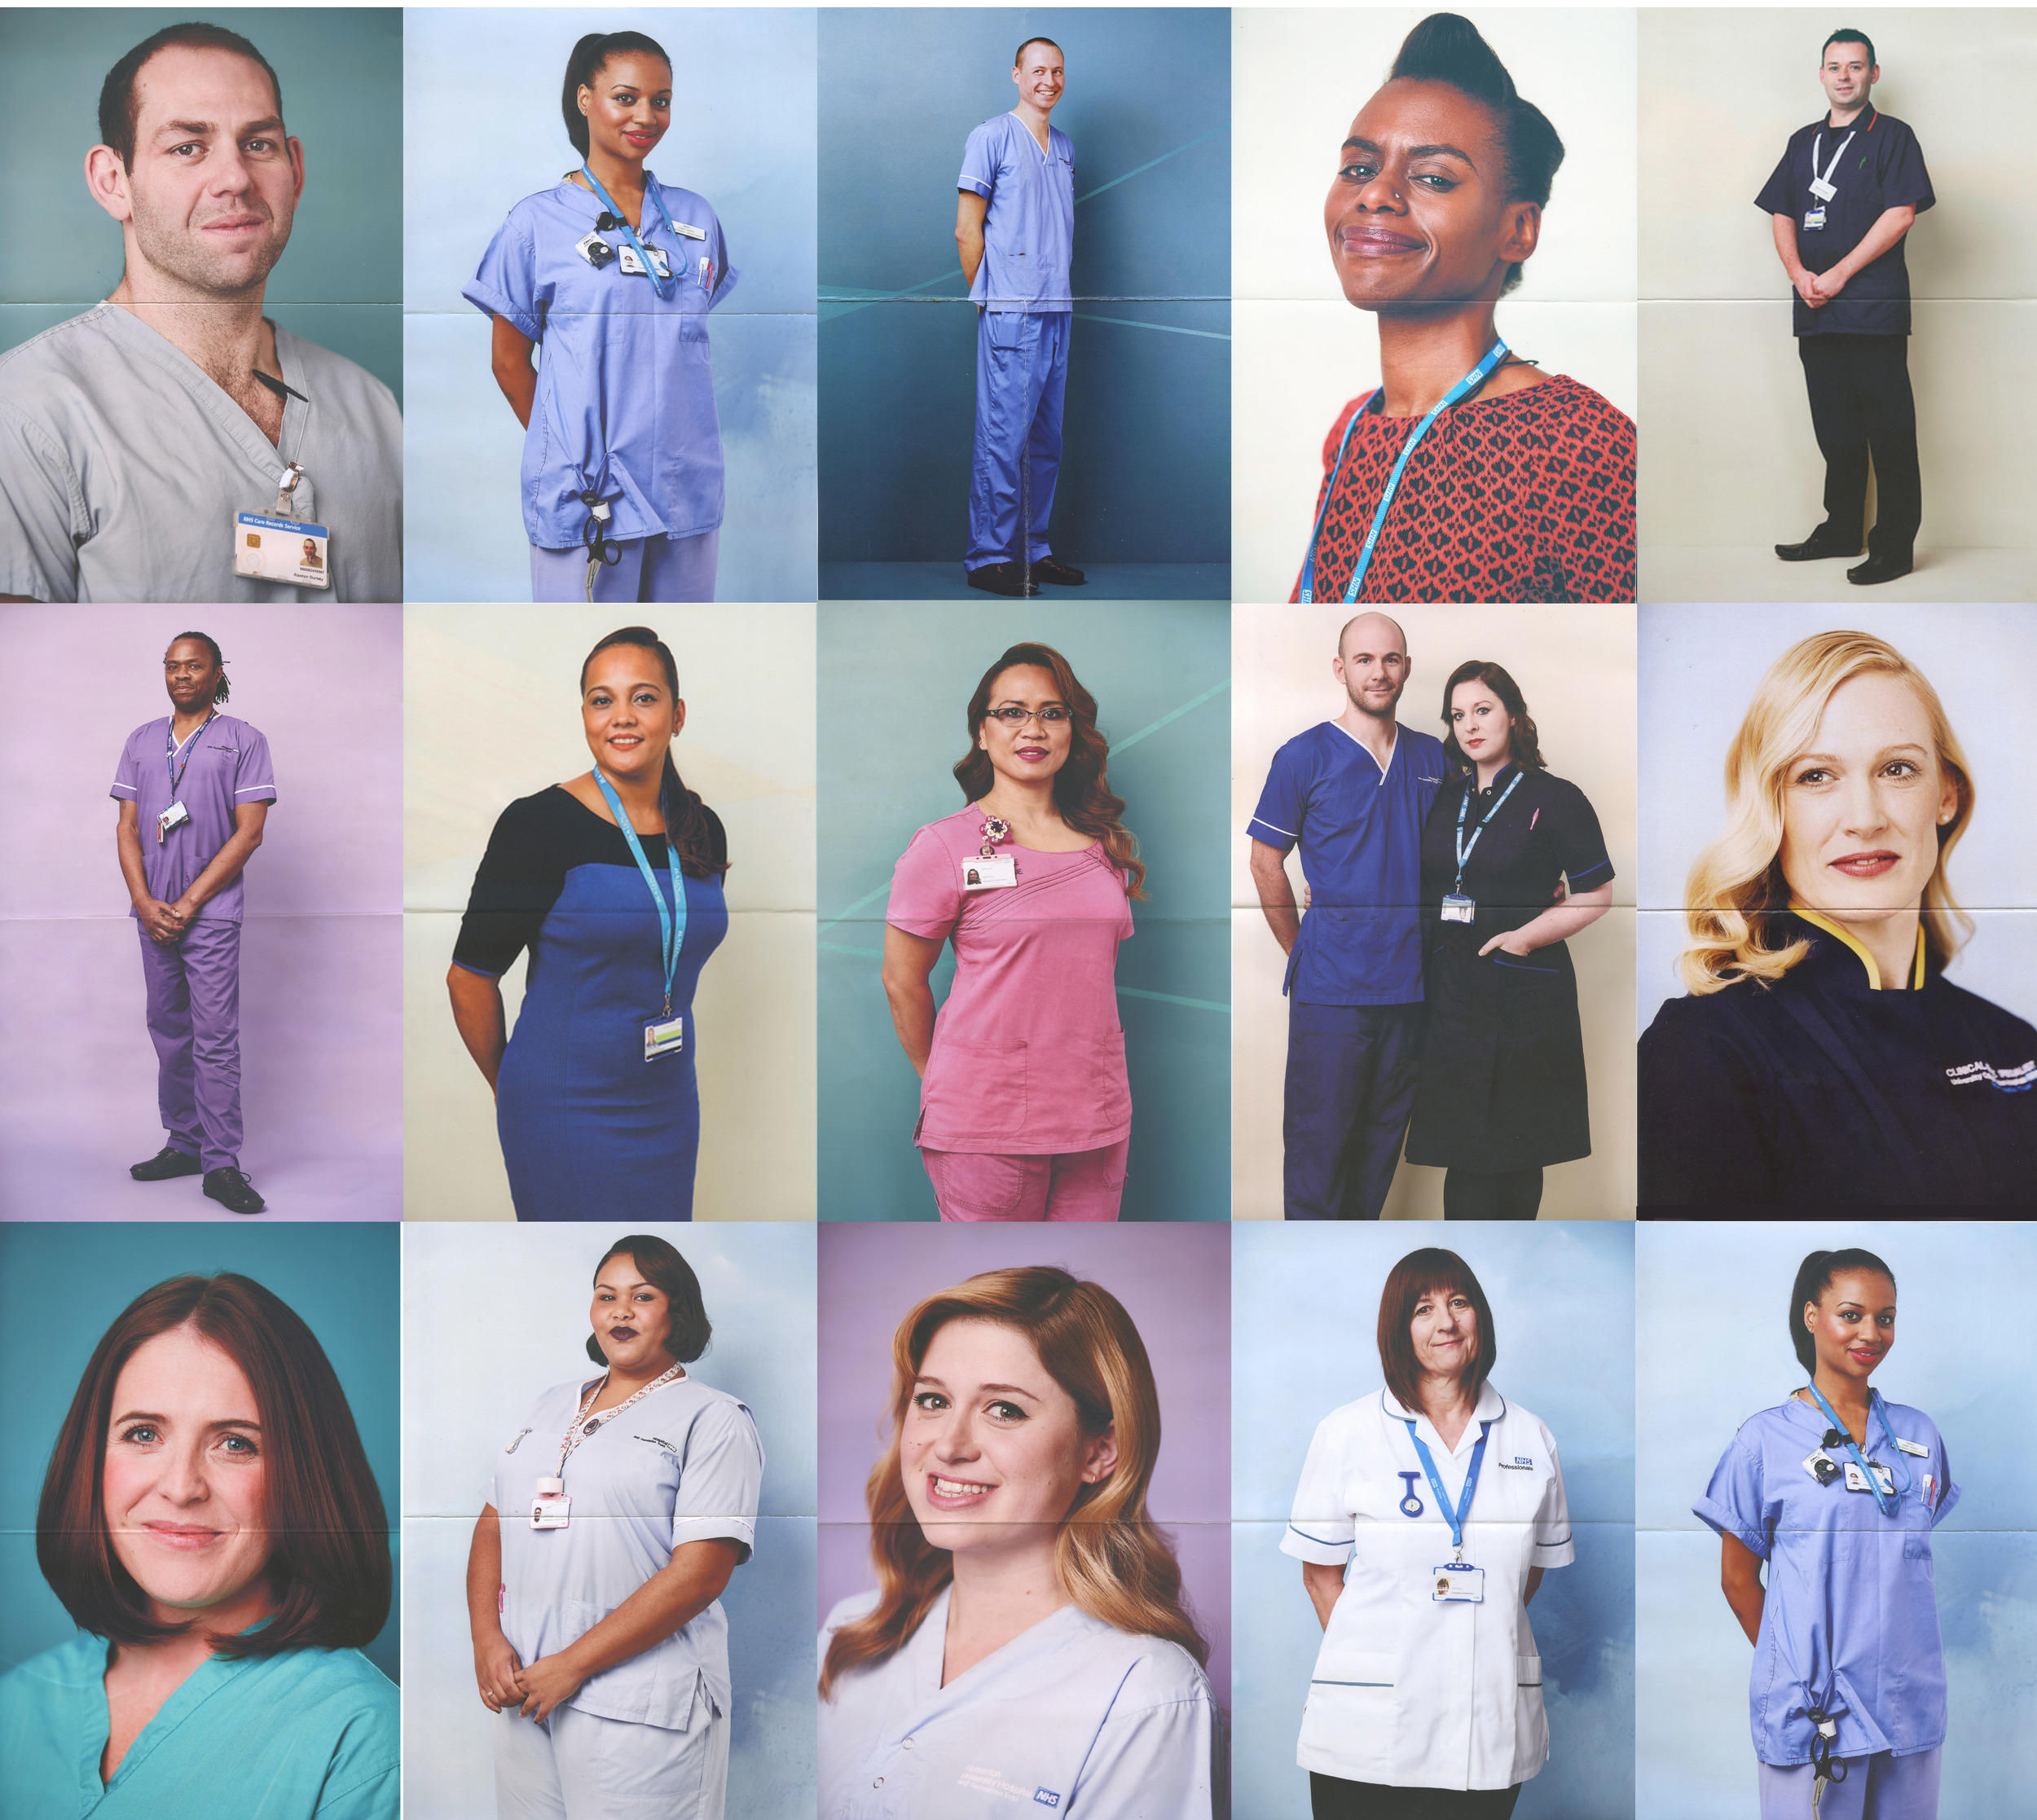 ONE NICE THING: THE MANY FACES OF NURSING    'One Nice Thing' was the brief given to the nurses who took part in this project when they were asked to tell a story connected to their profession. Photographer   Julia Kennedy   captures a selection of the many different faces and stories of nursing in this beautiful series of portraits.